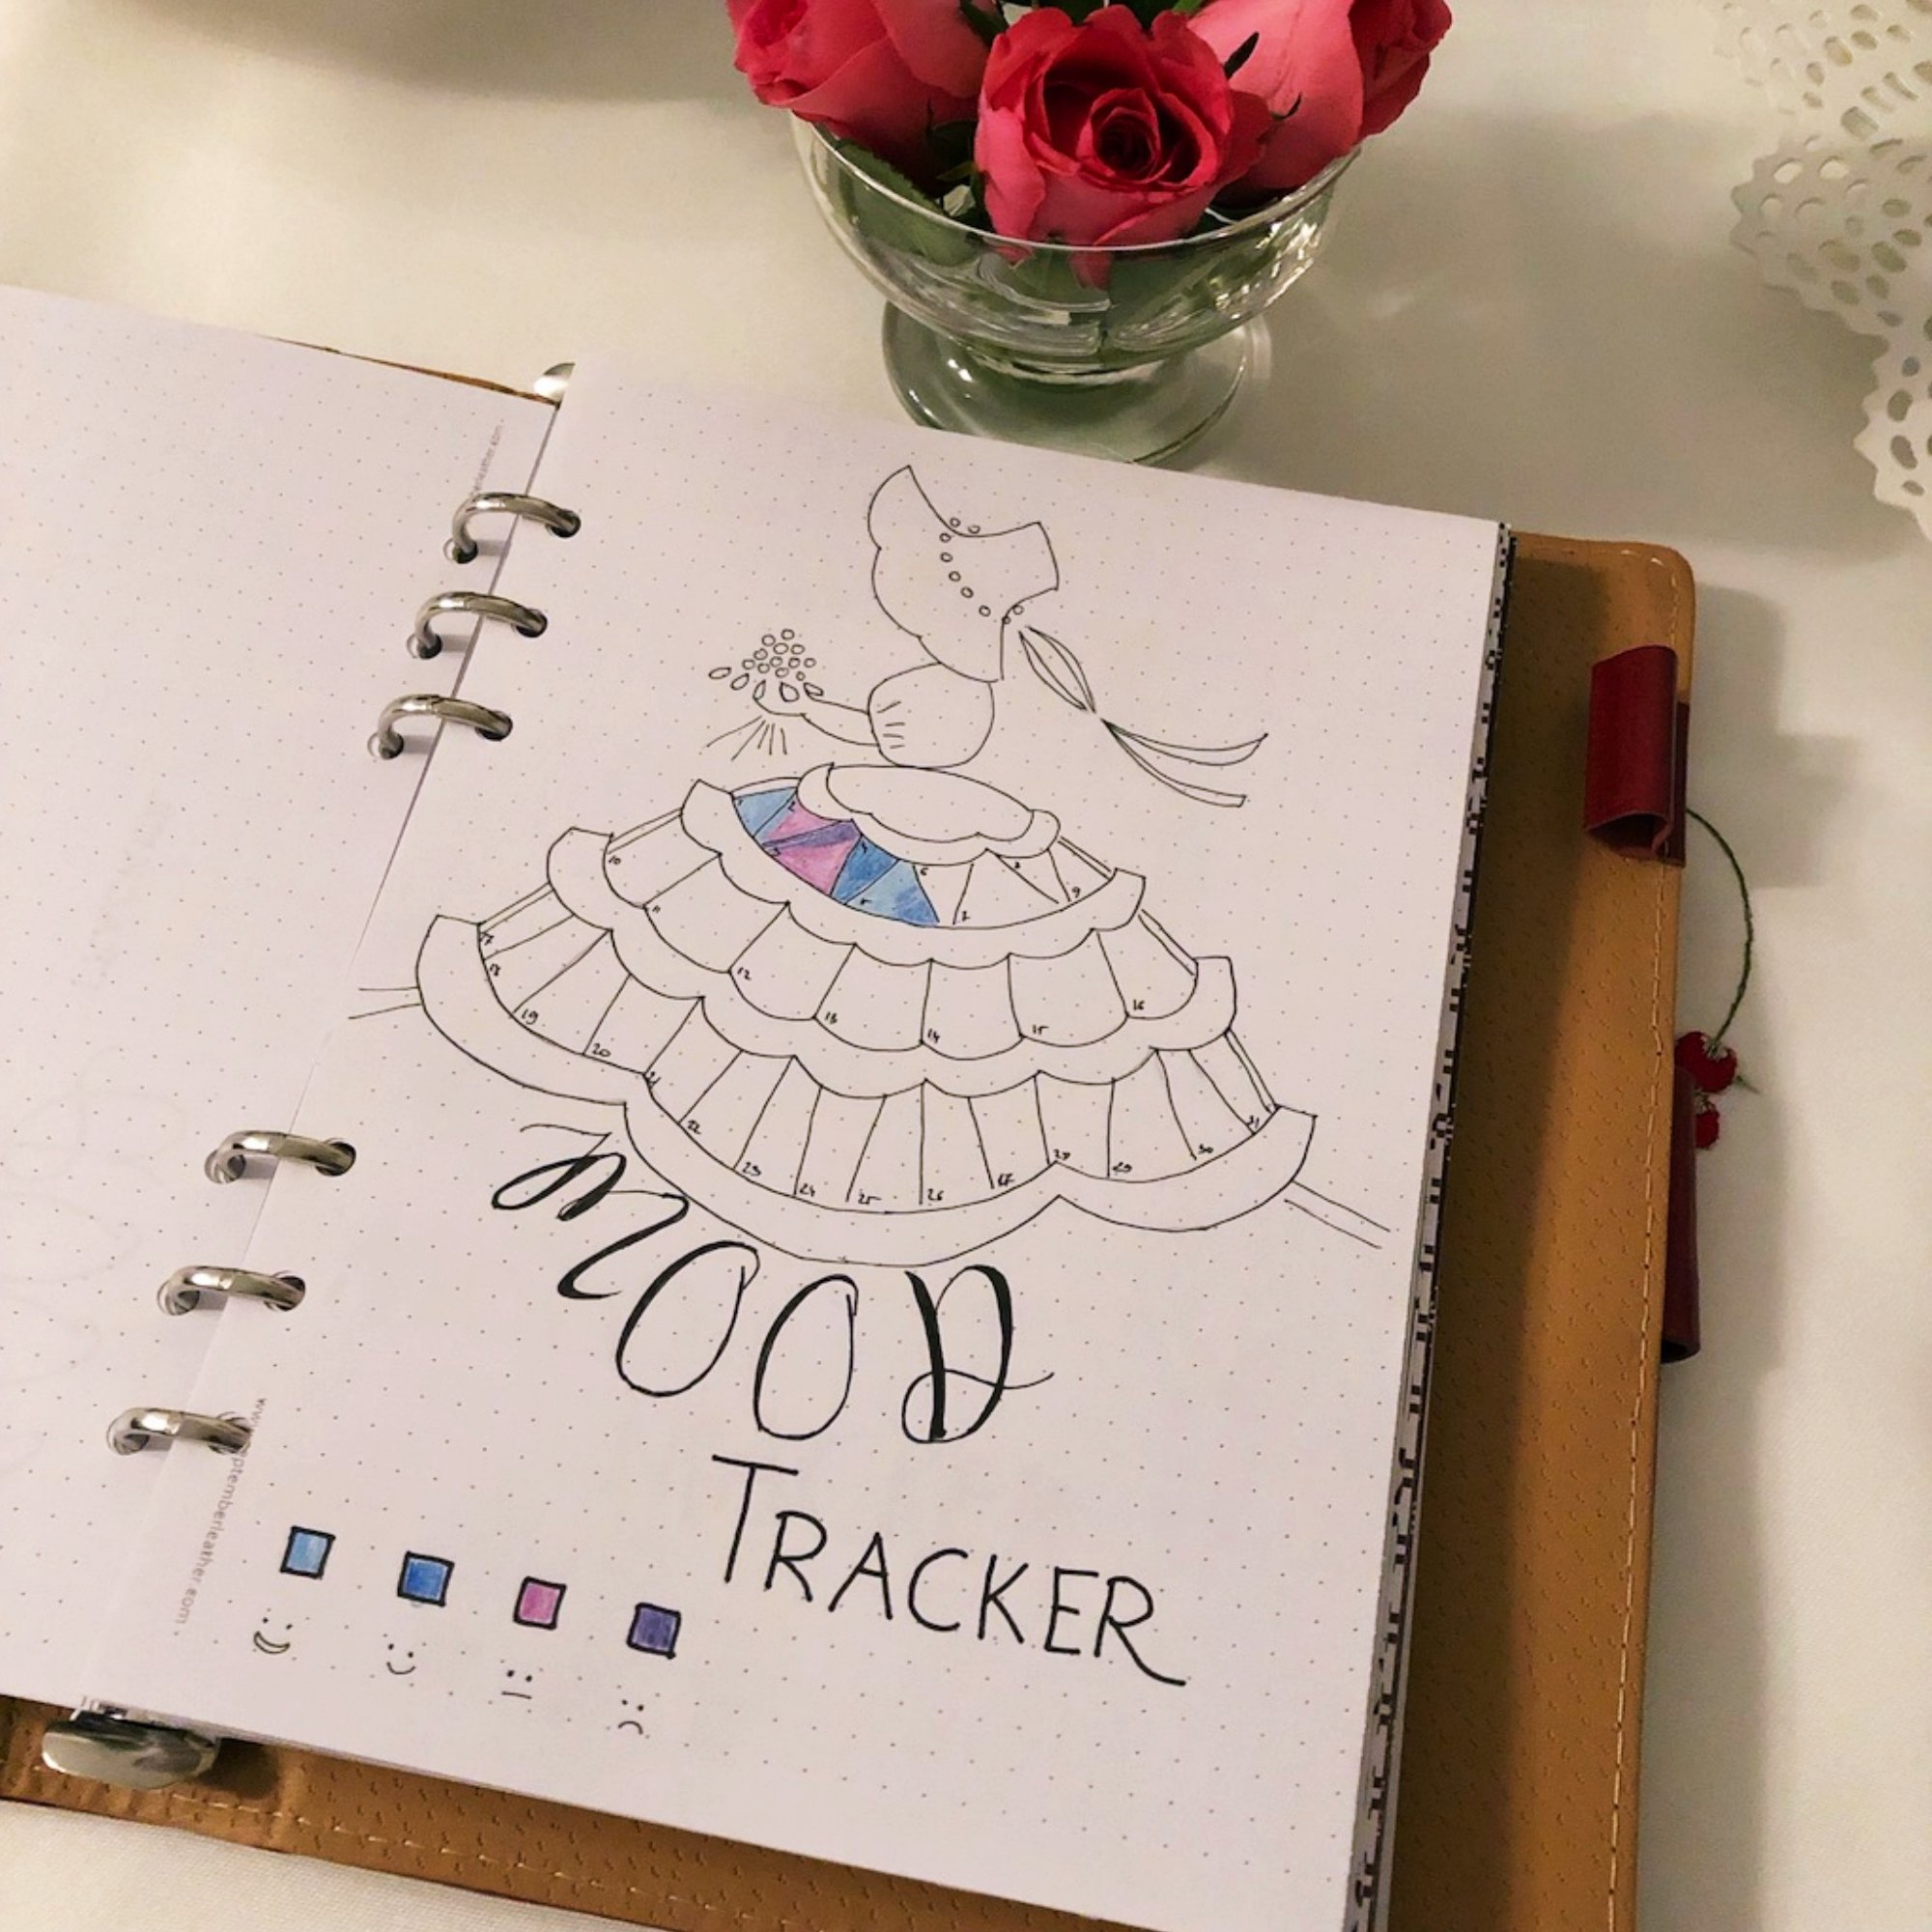 Mood tracker - Lady with flowers - itstartswithacoffee.com #moodtracker #tracker #journaling #planning #creativejournal #creativejournaling